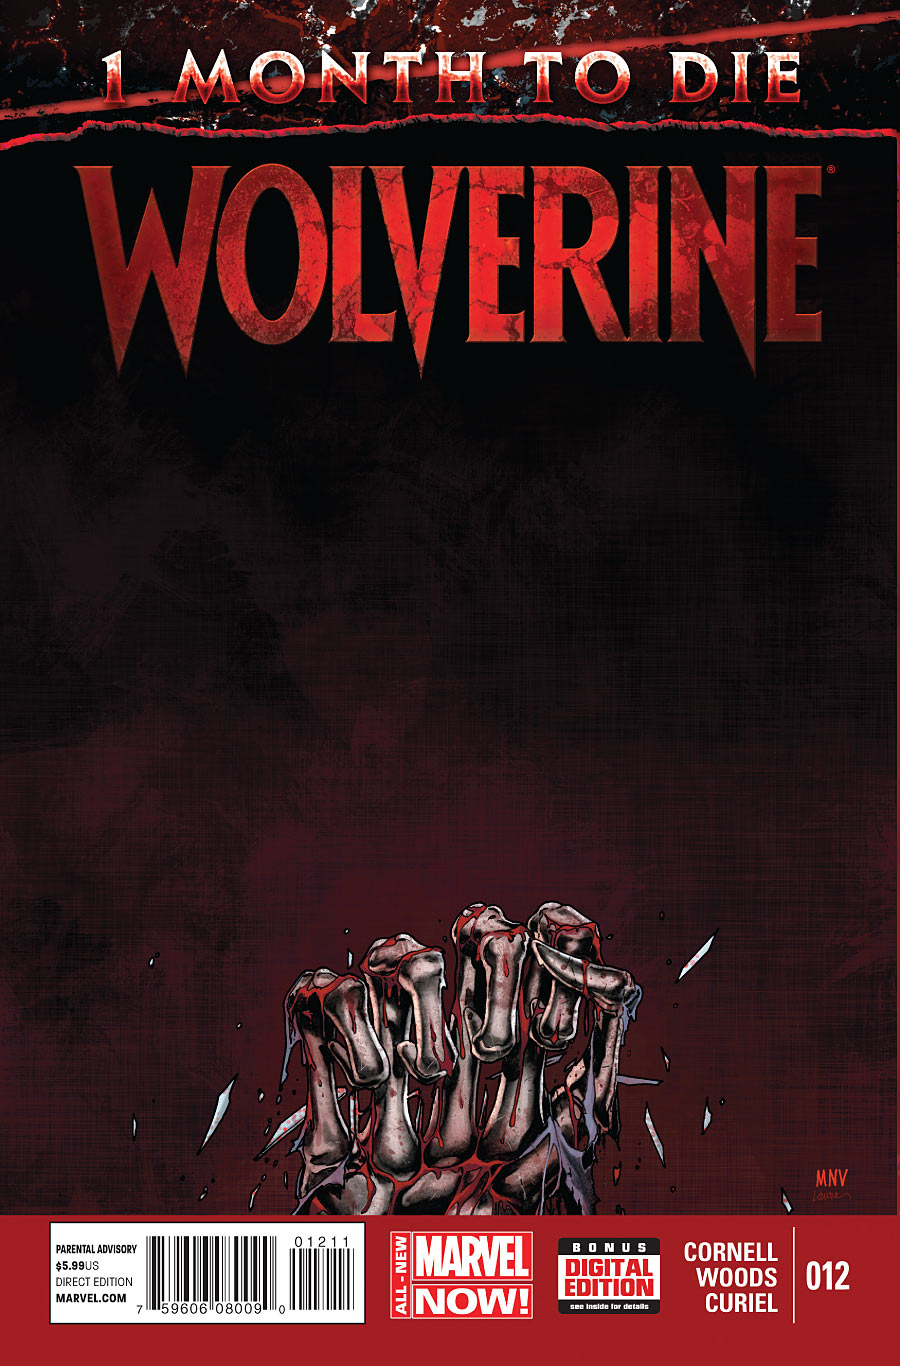 Wolverine #12 cover